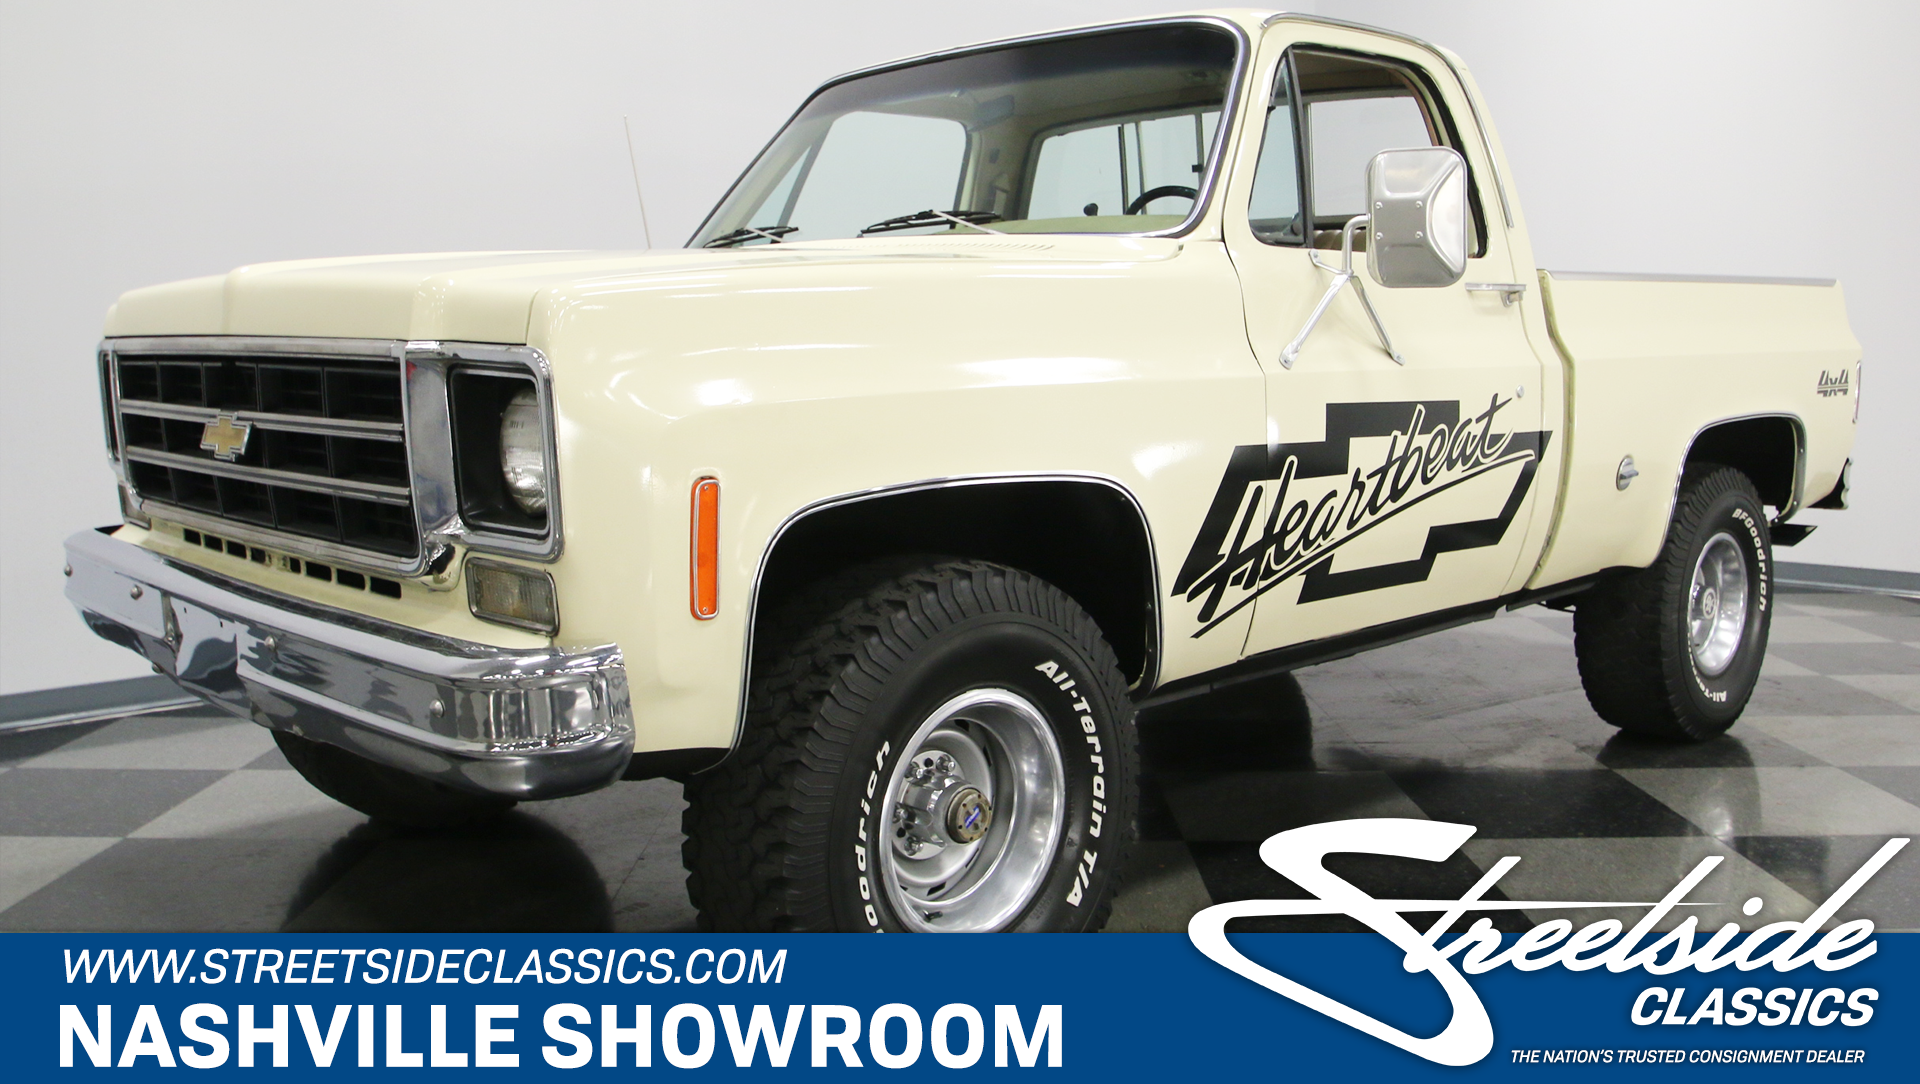 1978 Chevrolet K 10 Streetside Classics The Nations Trusted 1966 Chevy Cheyenne Super 4x4 Show More Photos